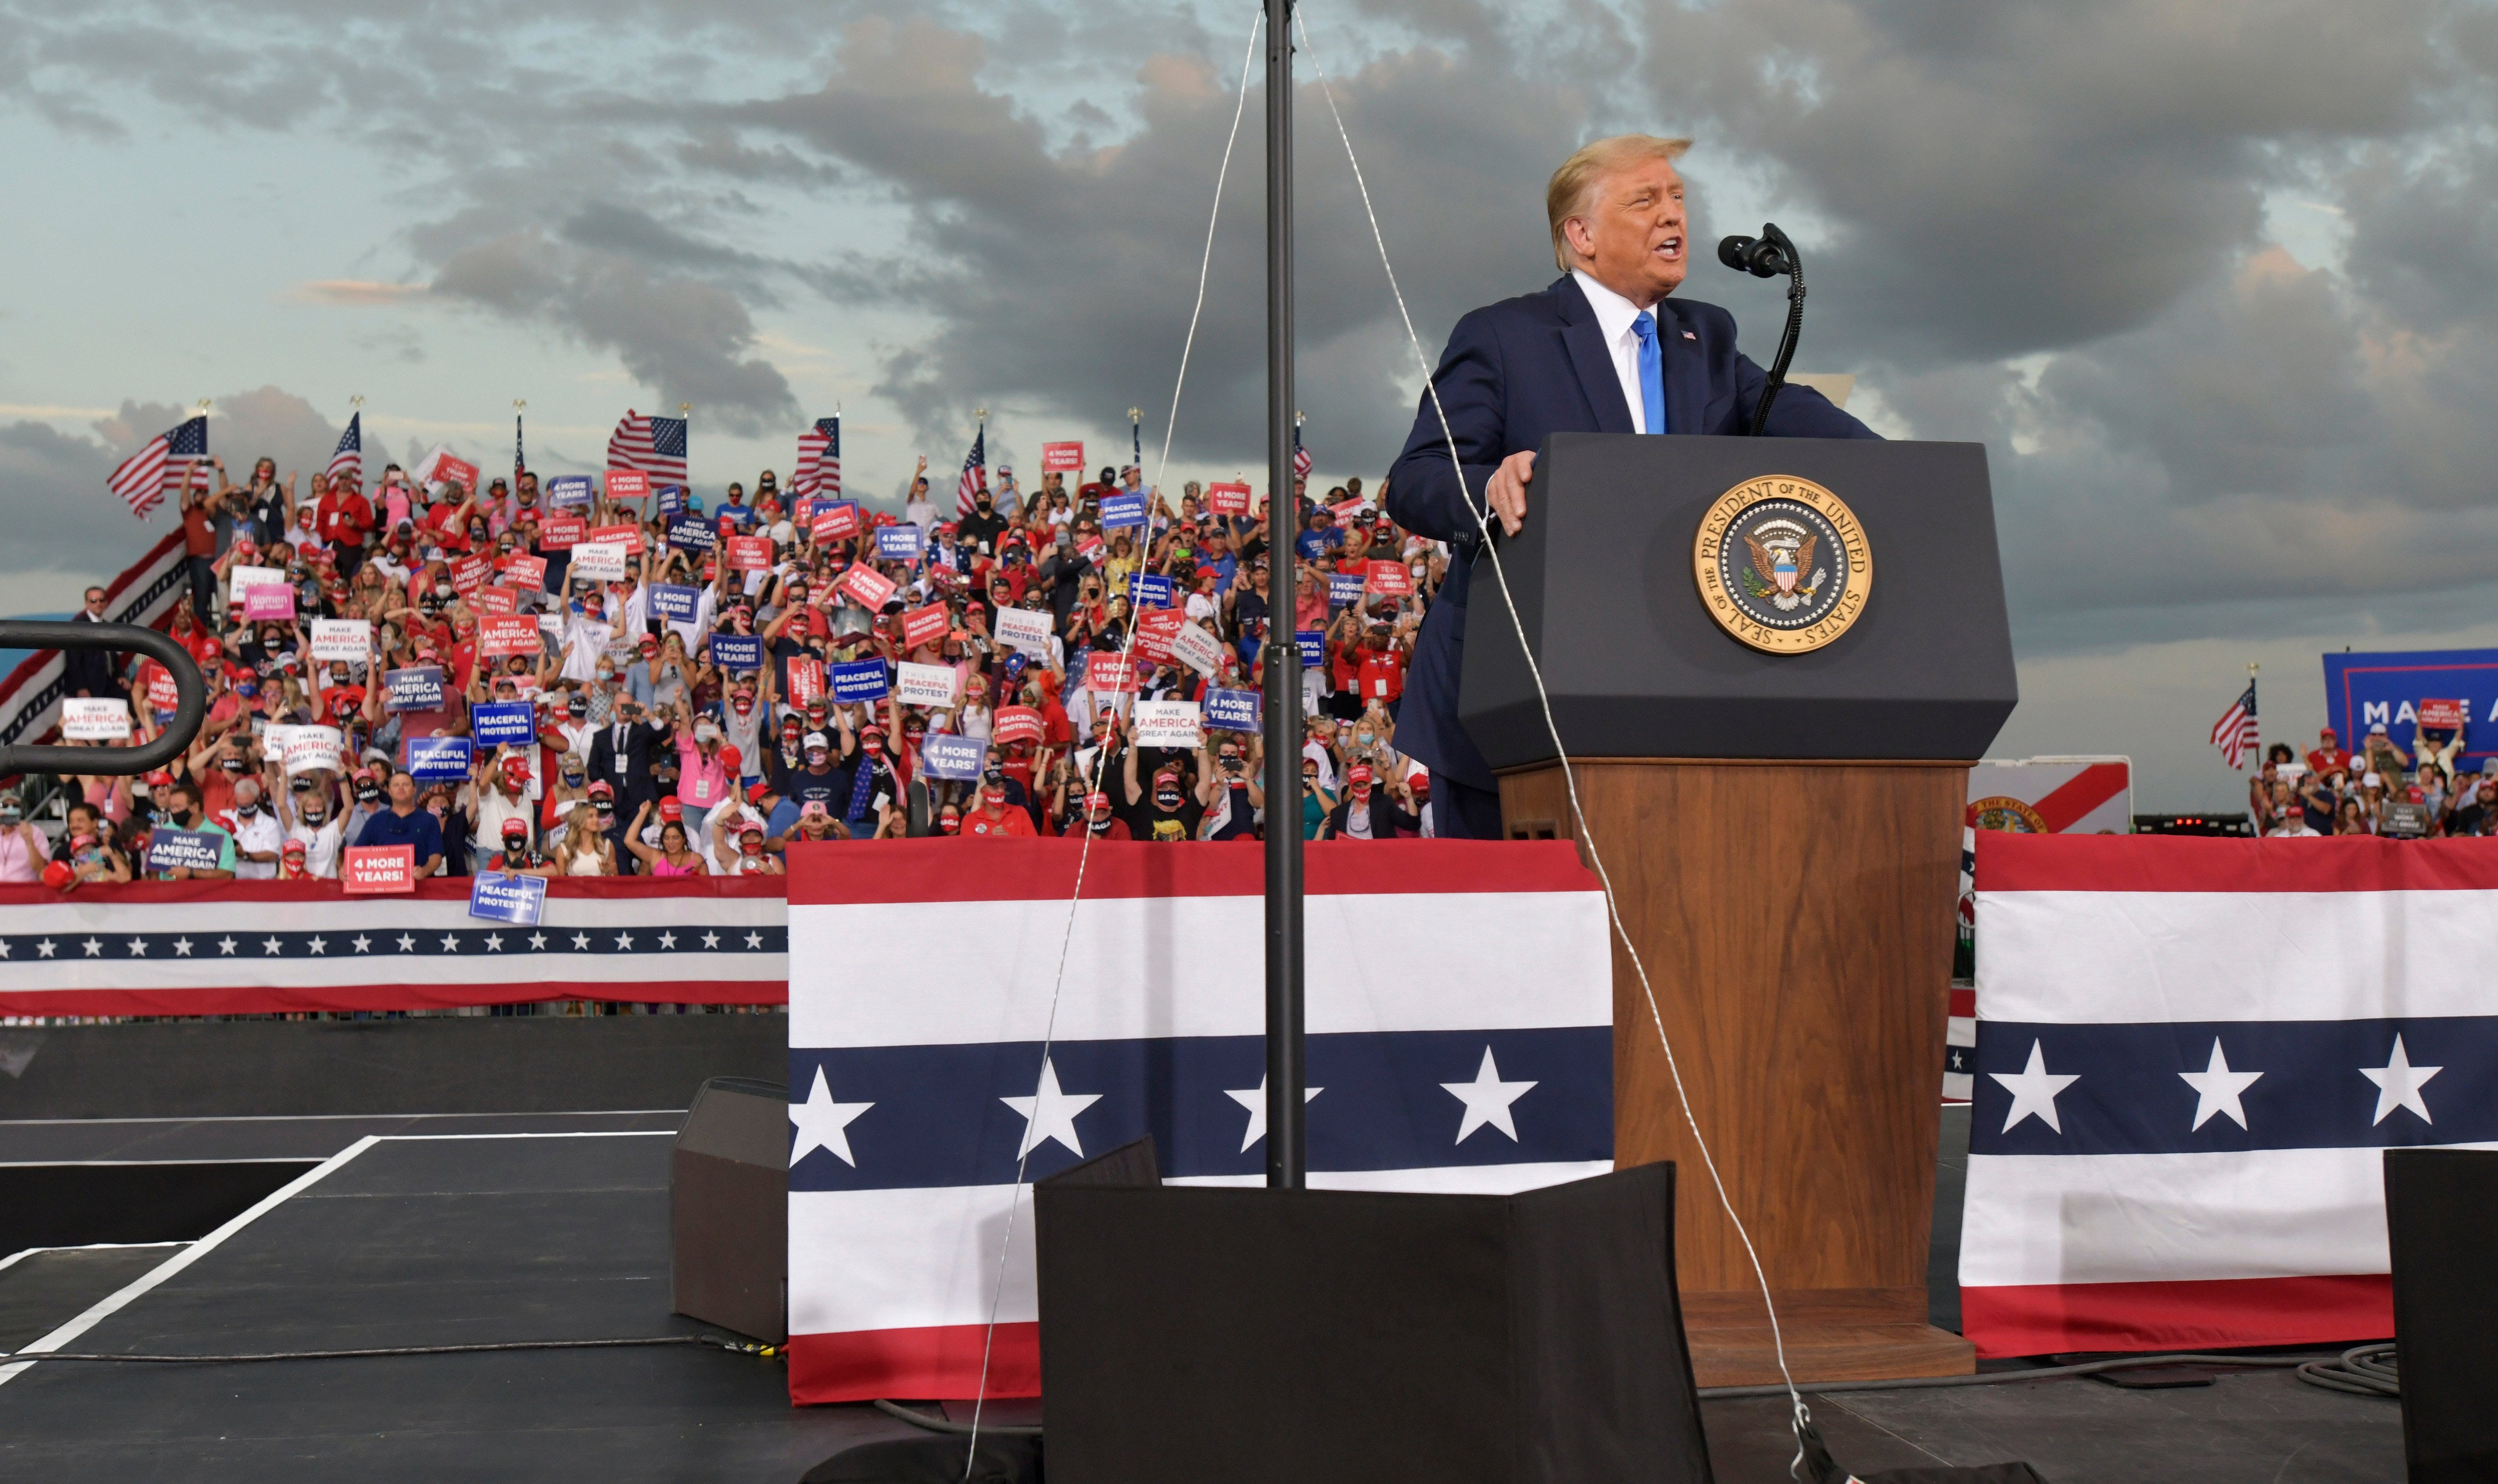 Trump campaigns in Jacksonville, calls for Biden to release list of Supreme Court choices